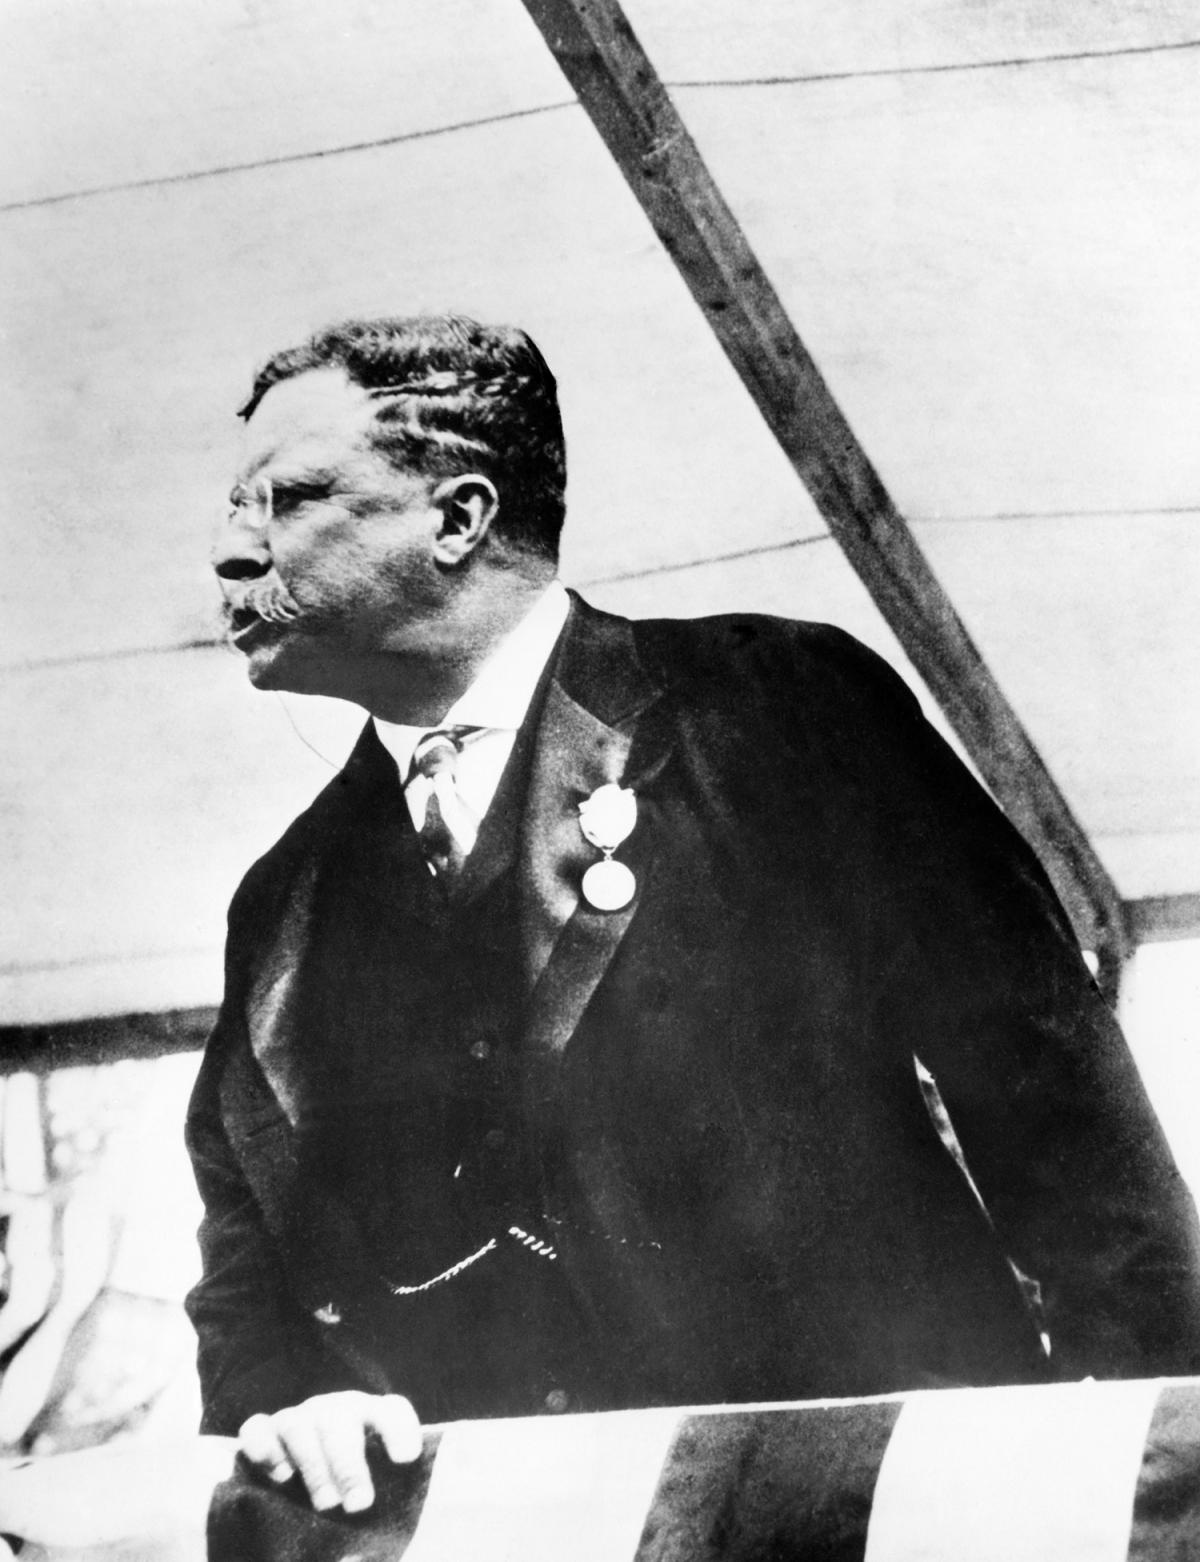 Teddy Roosevelt looking to his right, wearing a dark suit